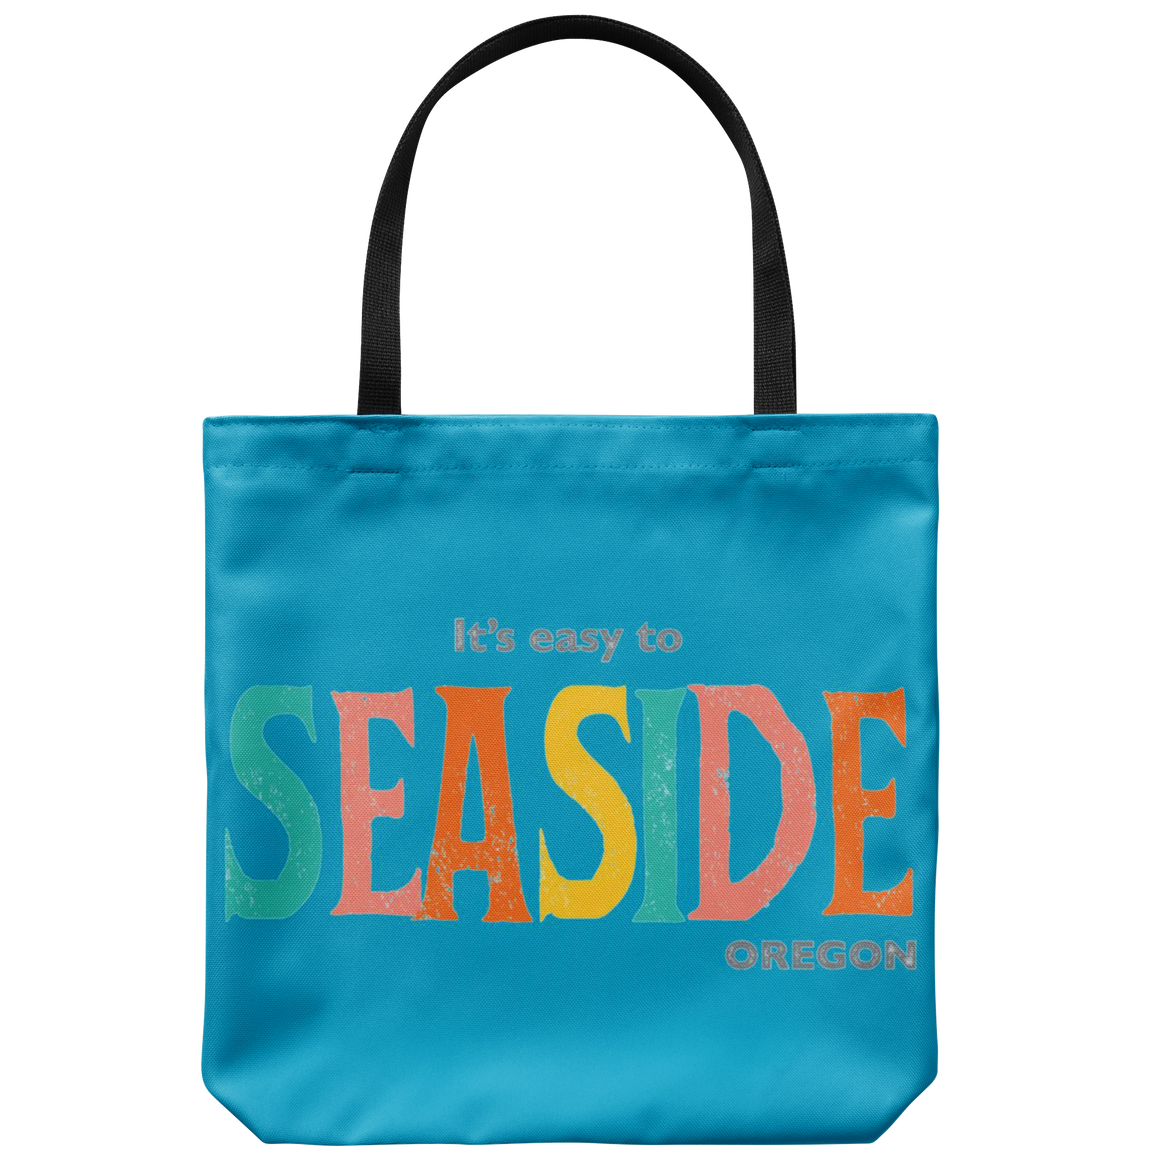 Blue Seaside Oregon Tote Bag